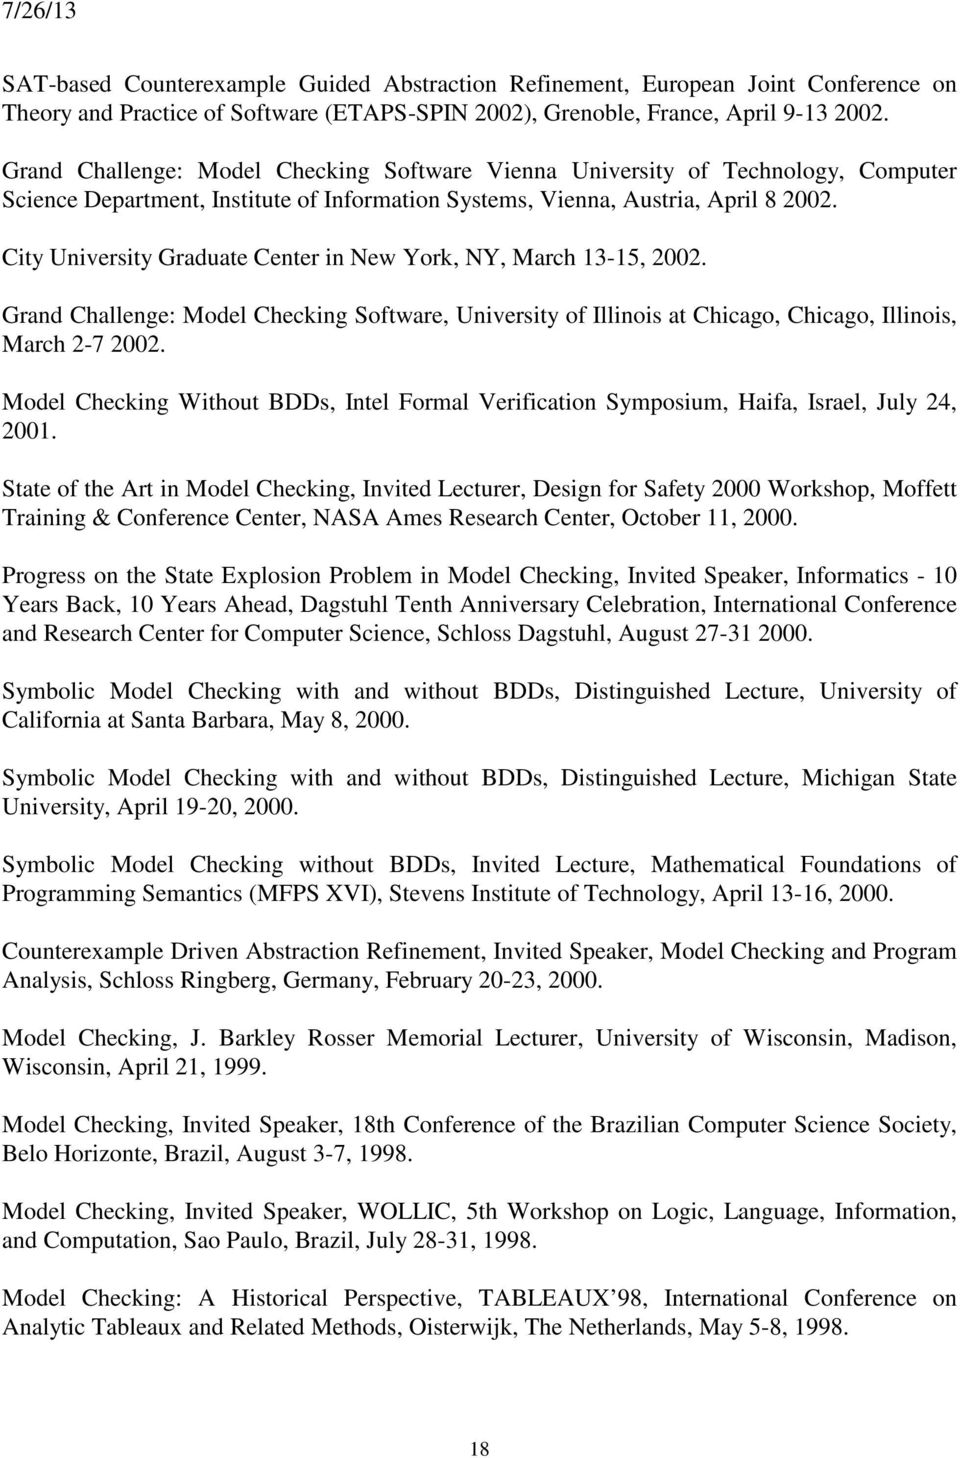 City University Graduate Center in New York, NY, March 13-15, 2002. Grand Challenge: Model Checking Software, University of Illinois at Chicago, Chicago, Illinois, March 2-7 2002.